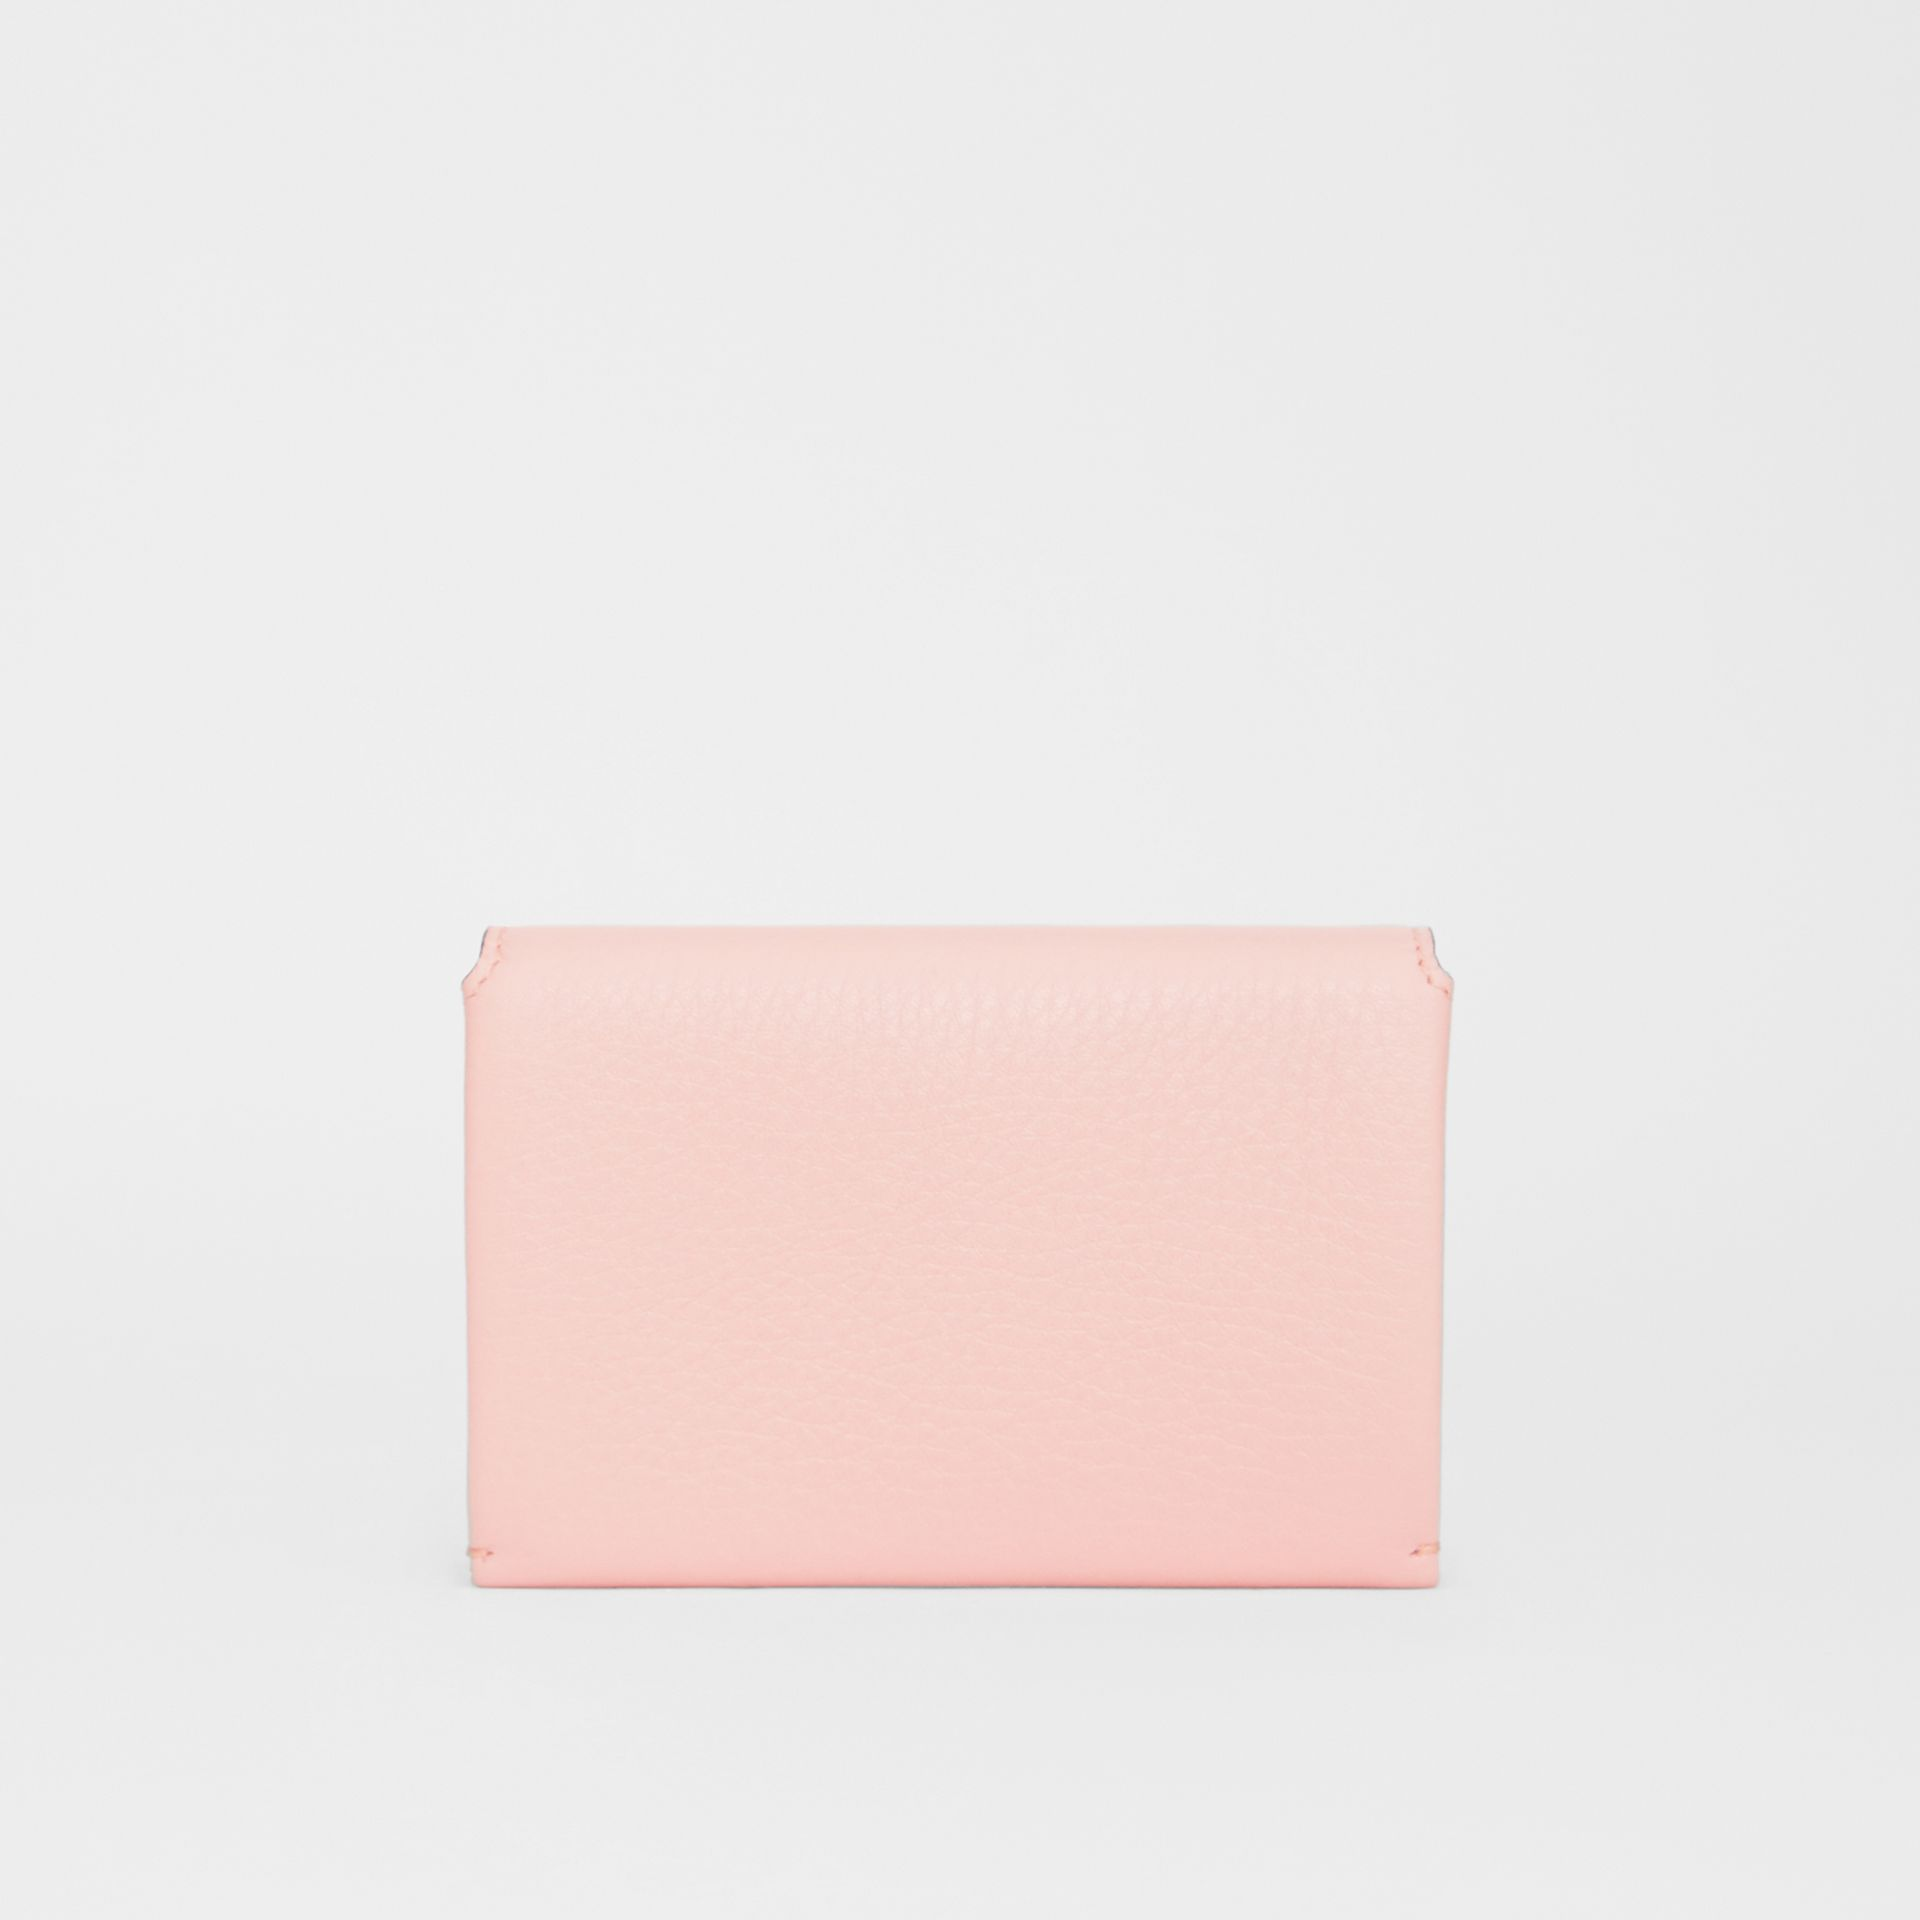 Triple Stud Leather Folding Wallet in Pale Ash Rose - Women | Burberry Australia - gallery image 4